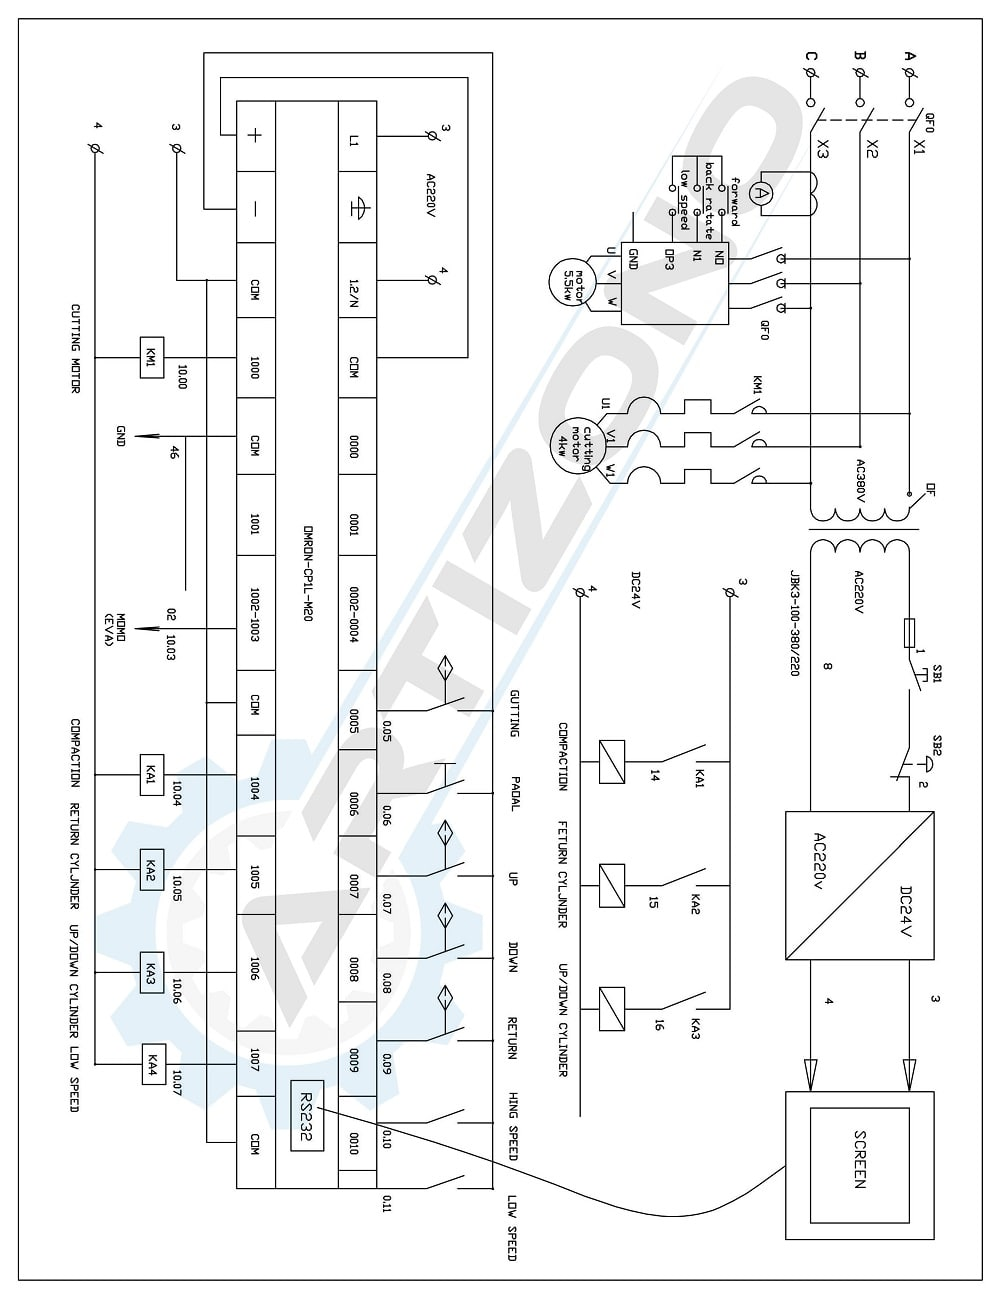 Wiring Diagram of Spiral Duct Machine